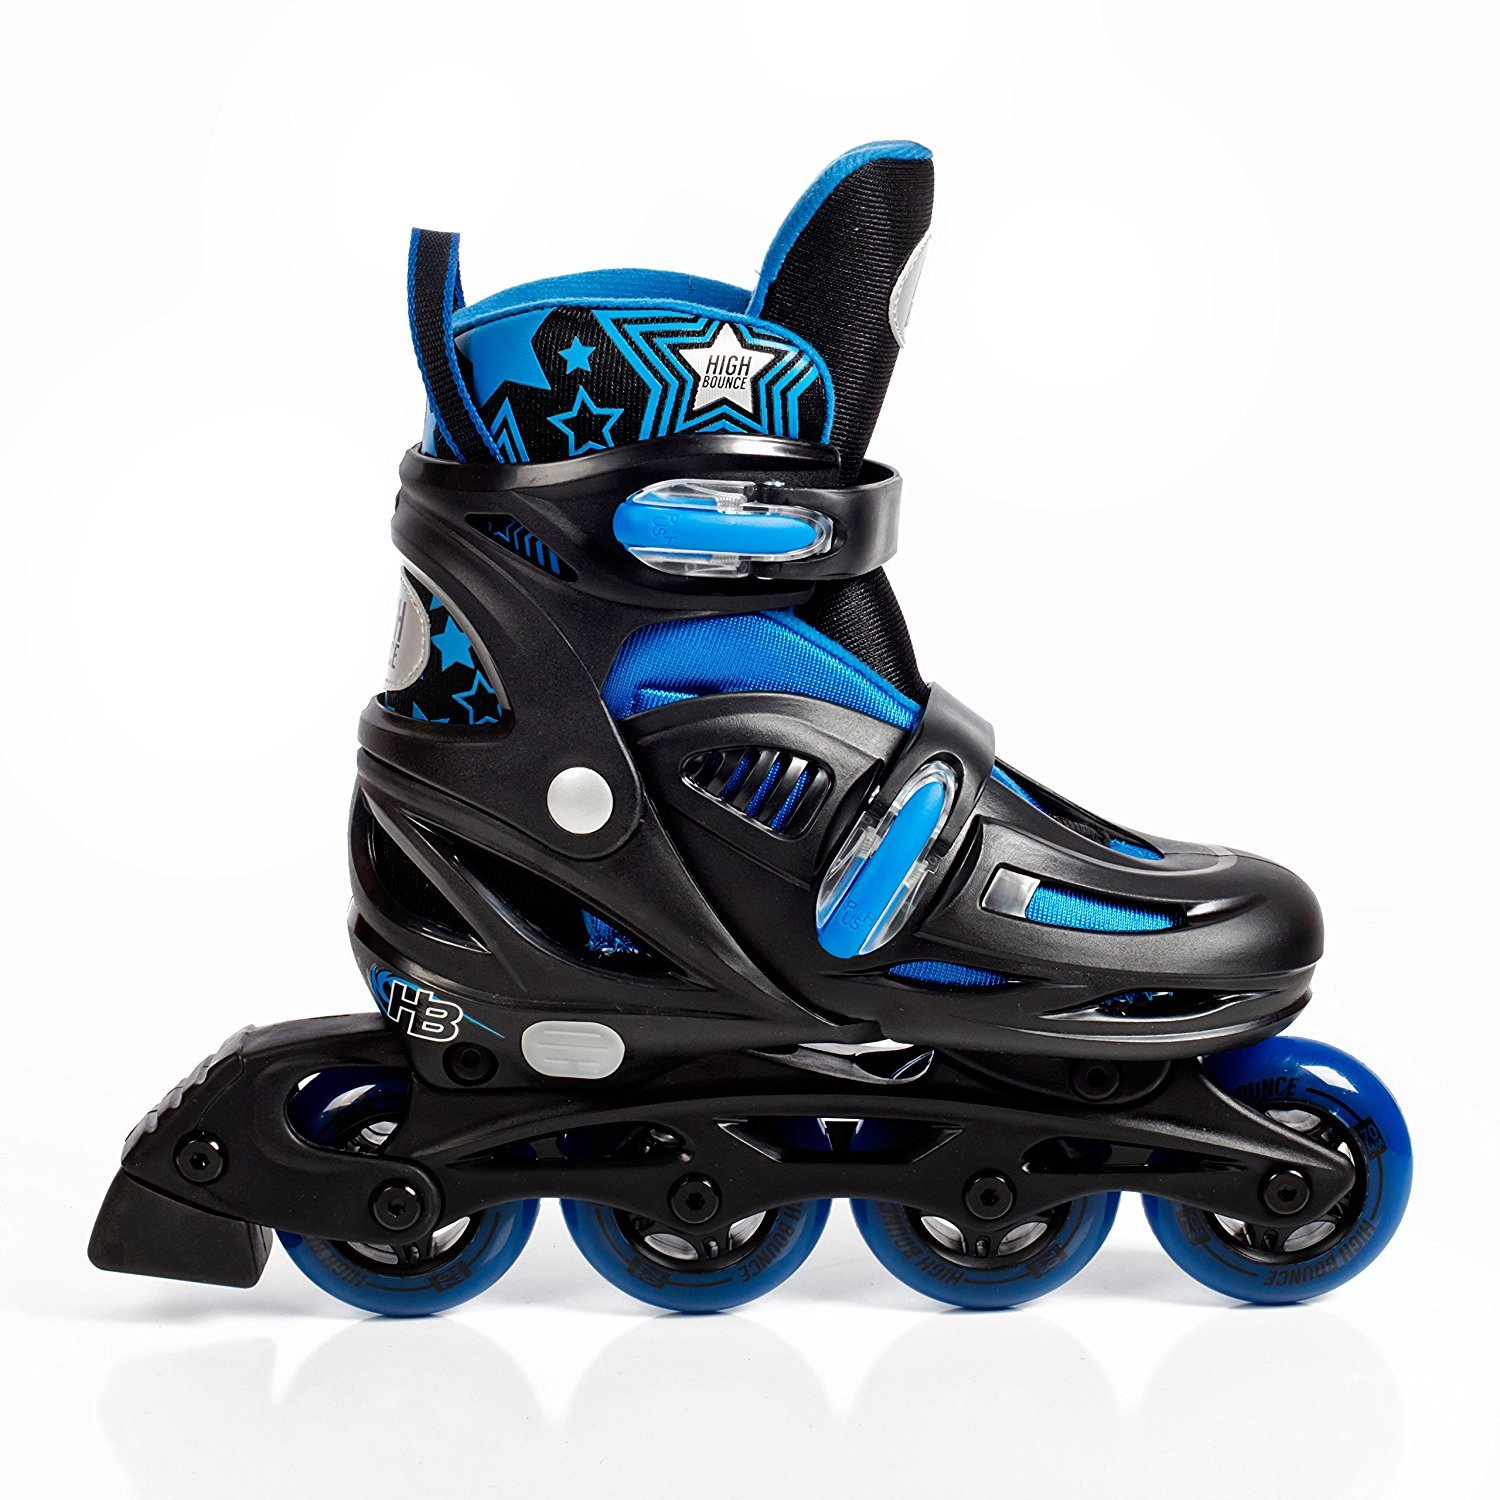 Pop out roller skate shoes - Amazon Com High Bounce Rollerblades Adjustable Inline Skate Sports Outdoors